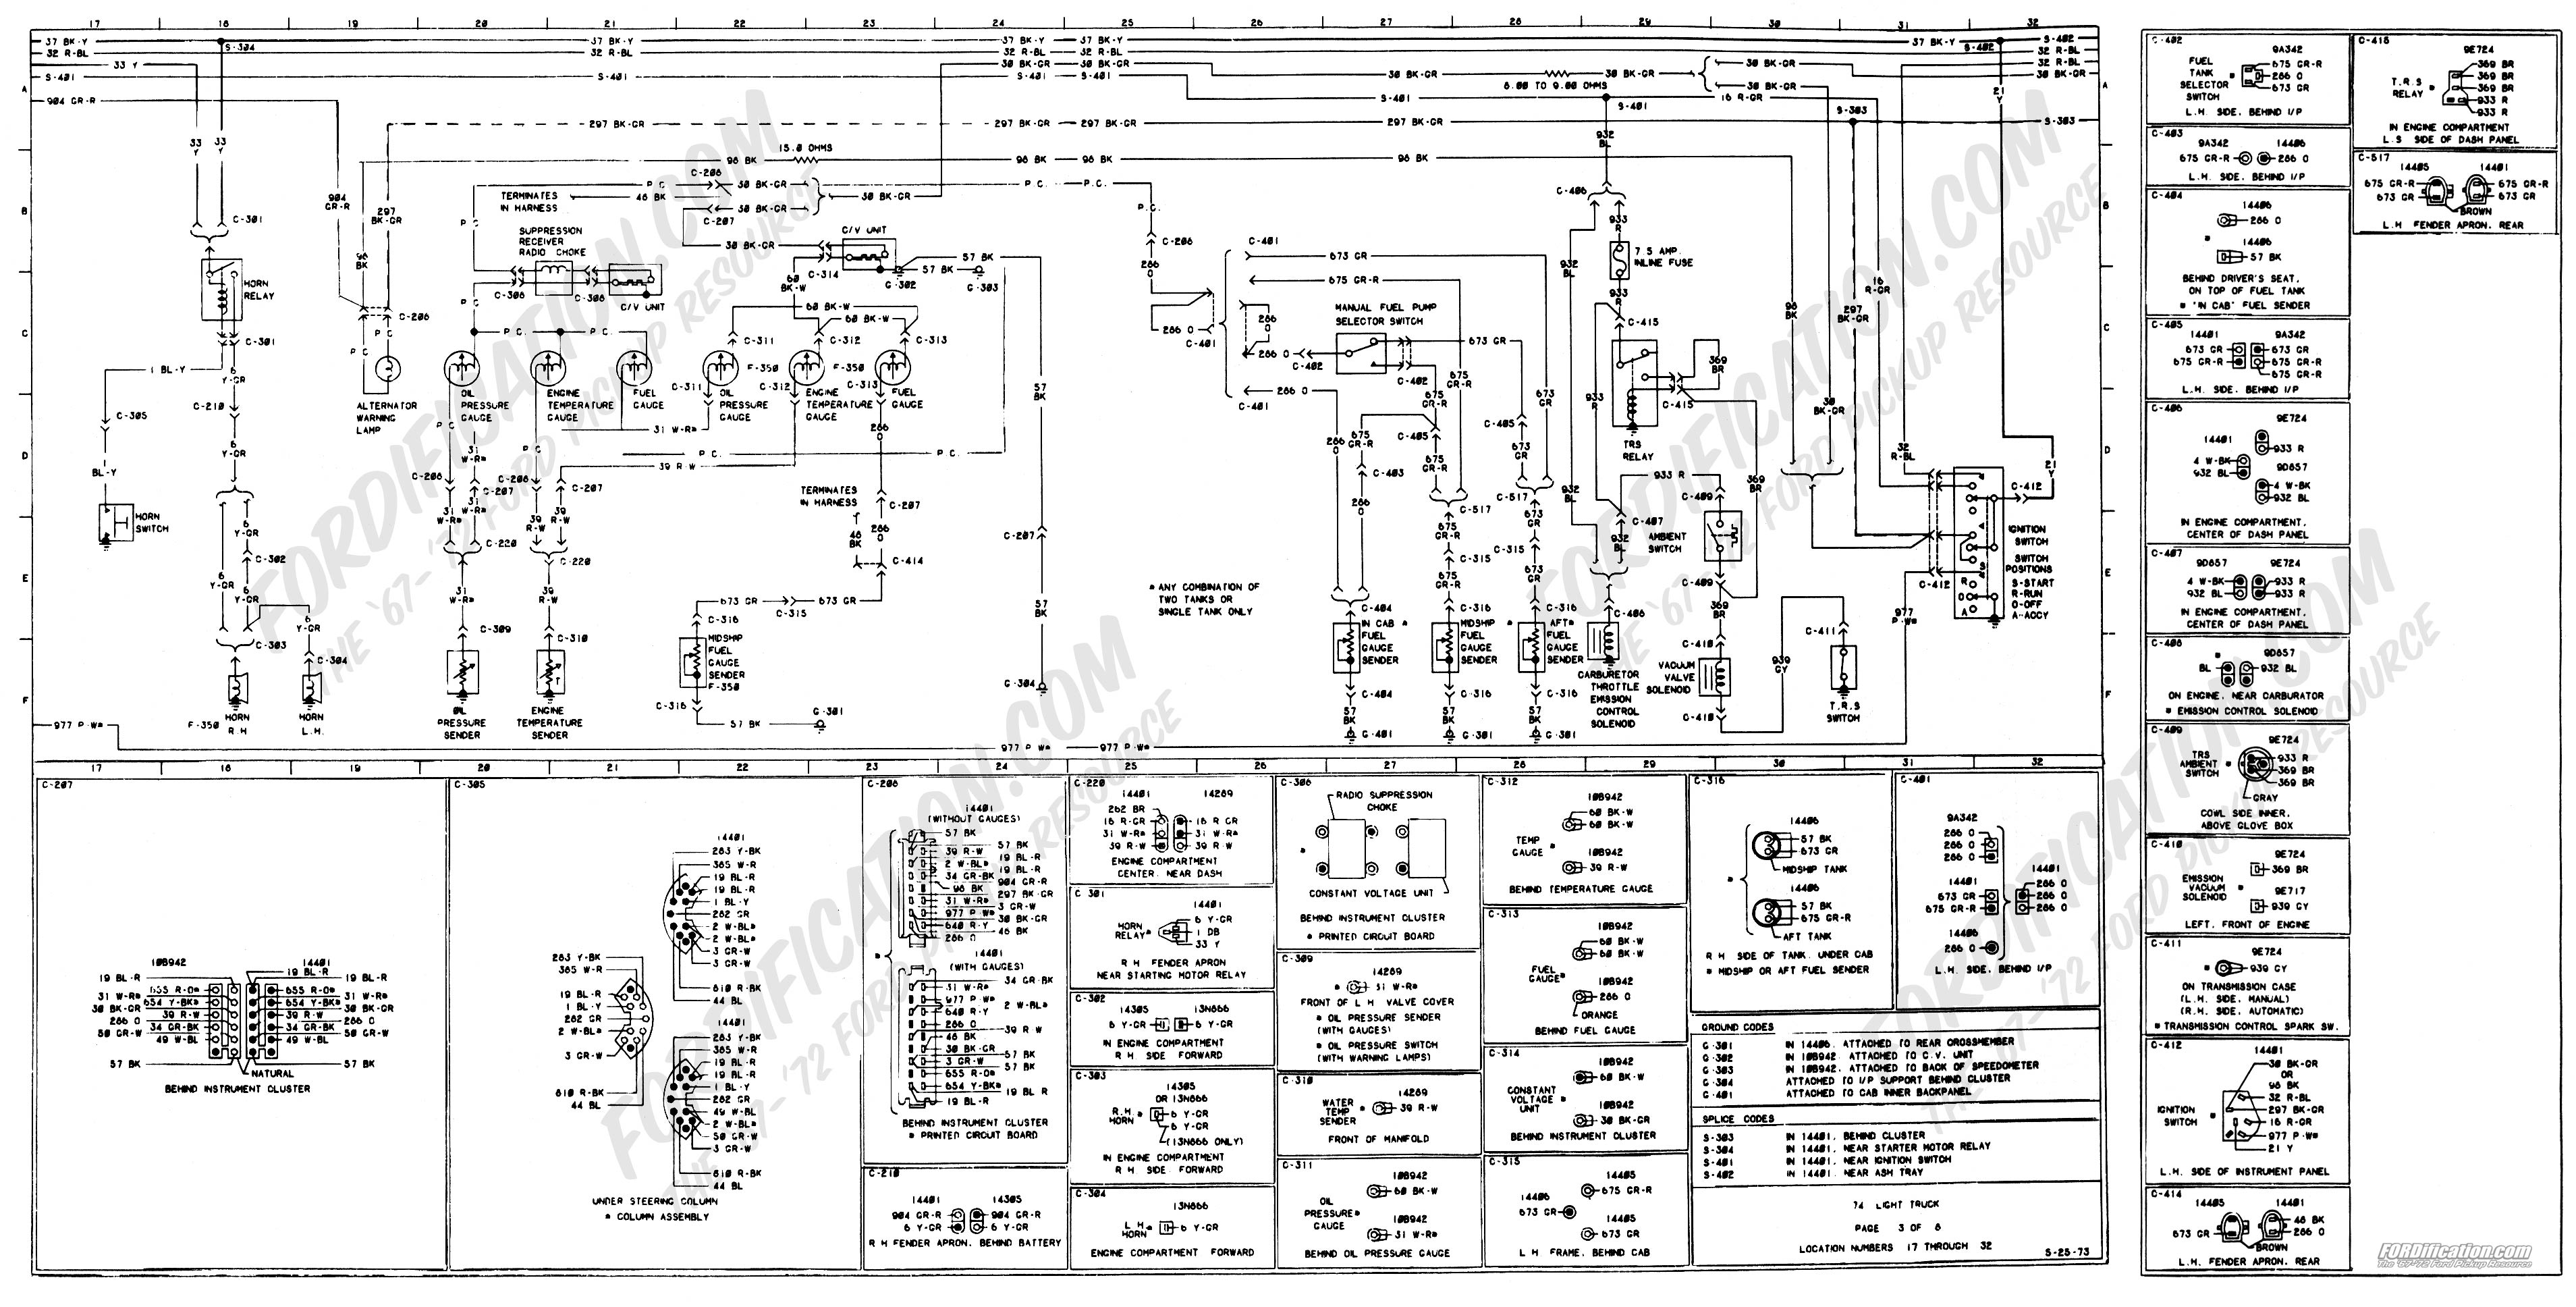 1056182 74 F100 Help With Wiring Diagram on 1999 ford f 250 super duty wiring diagram